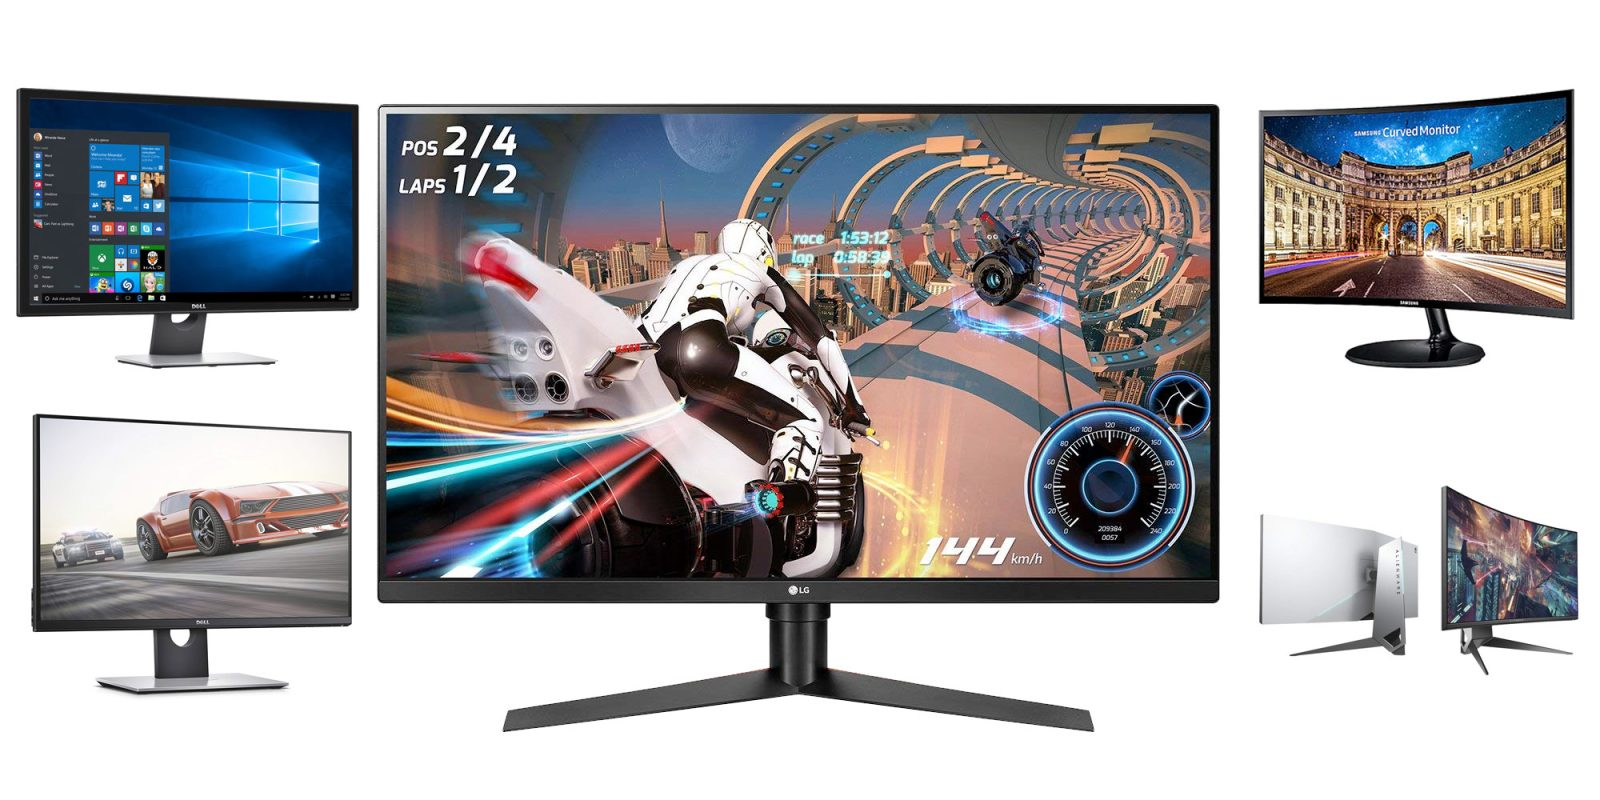 Black Friday Monitor Deals: LG 32